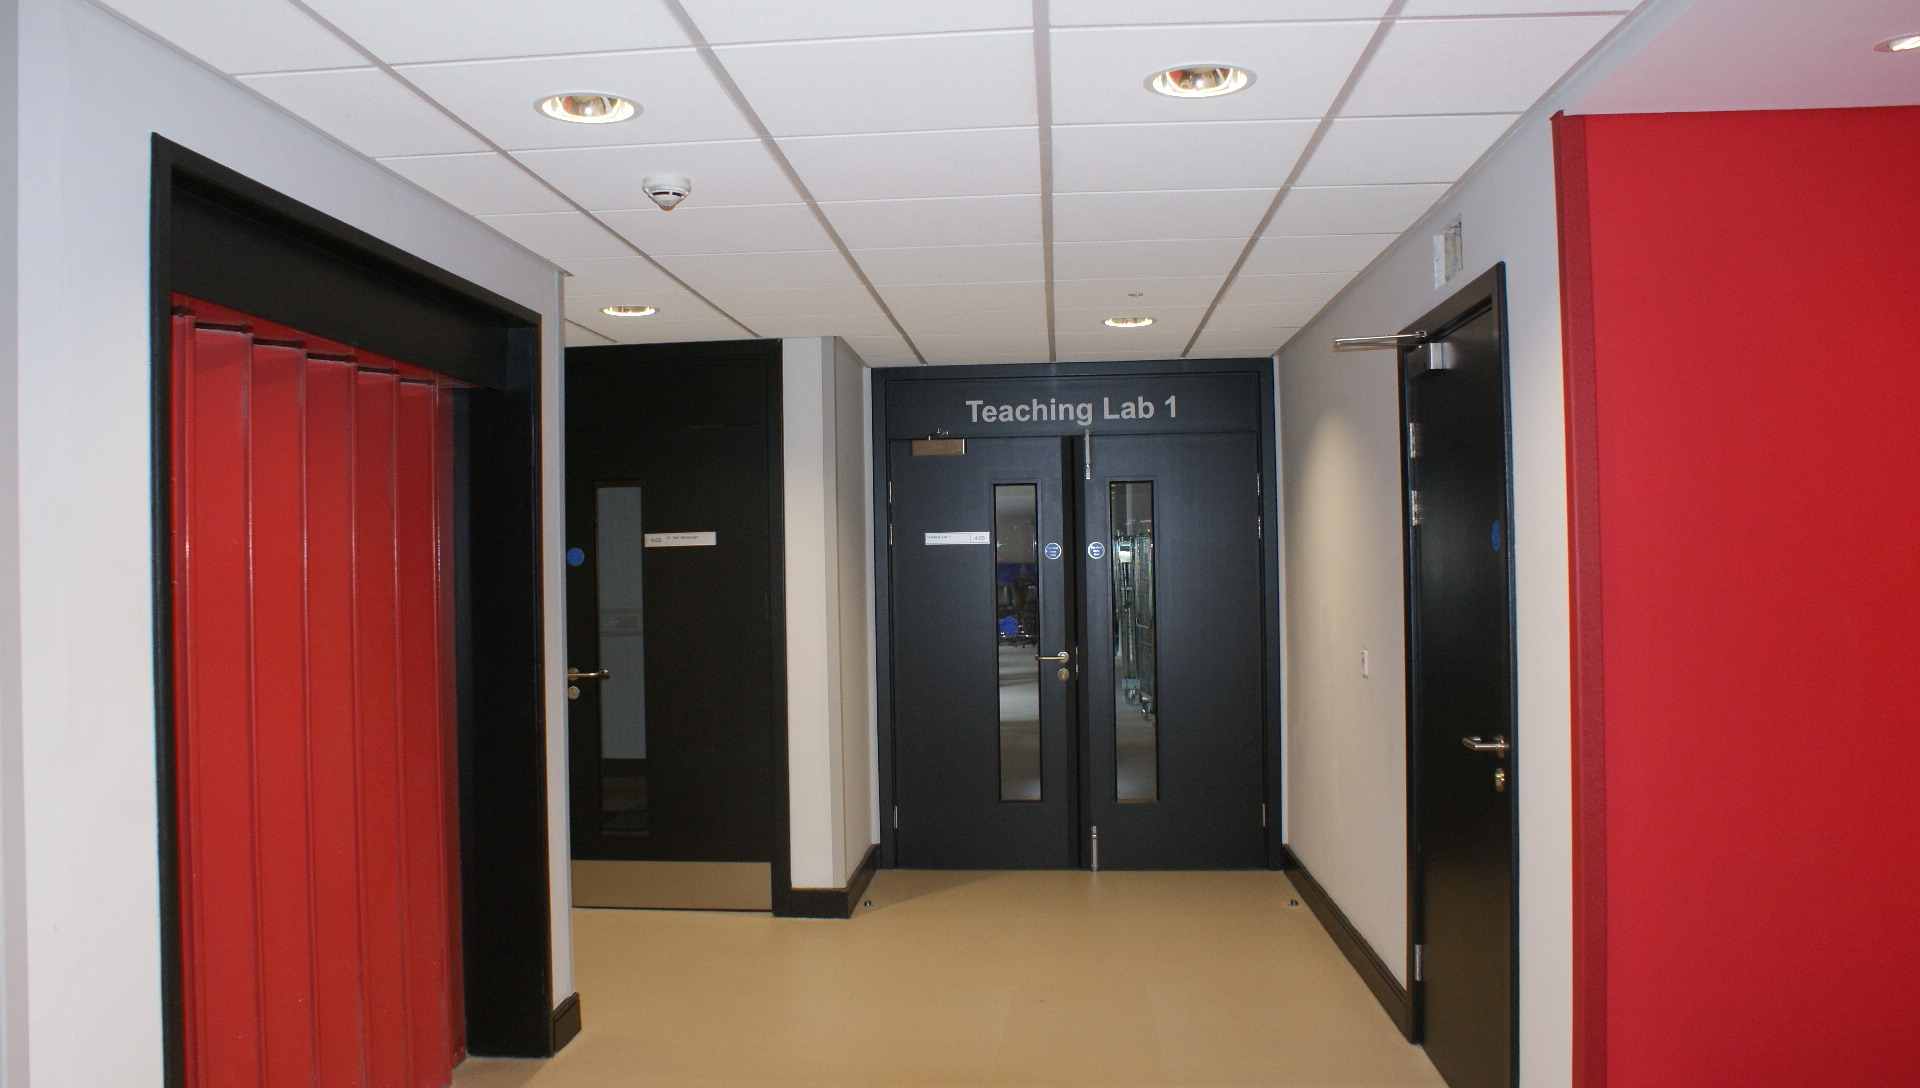 Corridor showing teaching laboratory and offices.